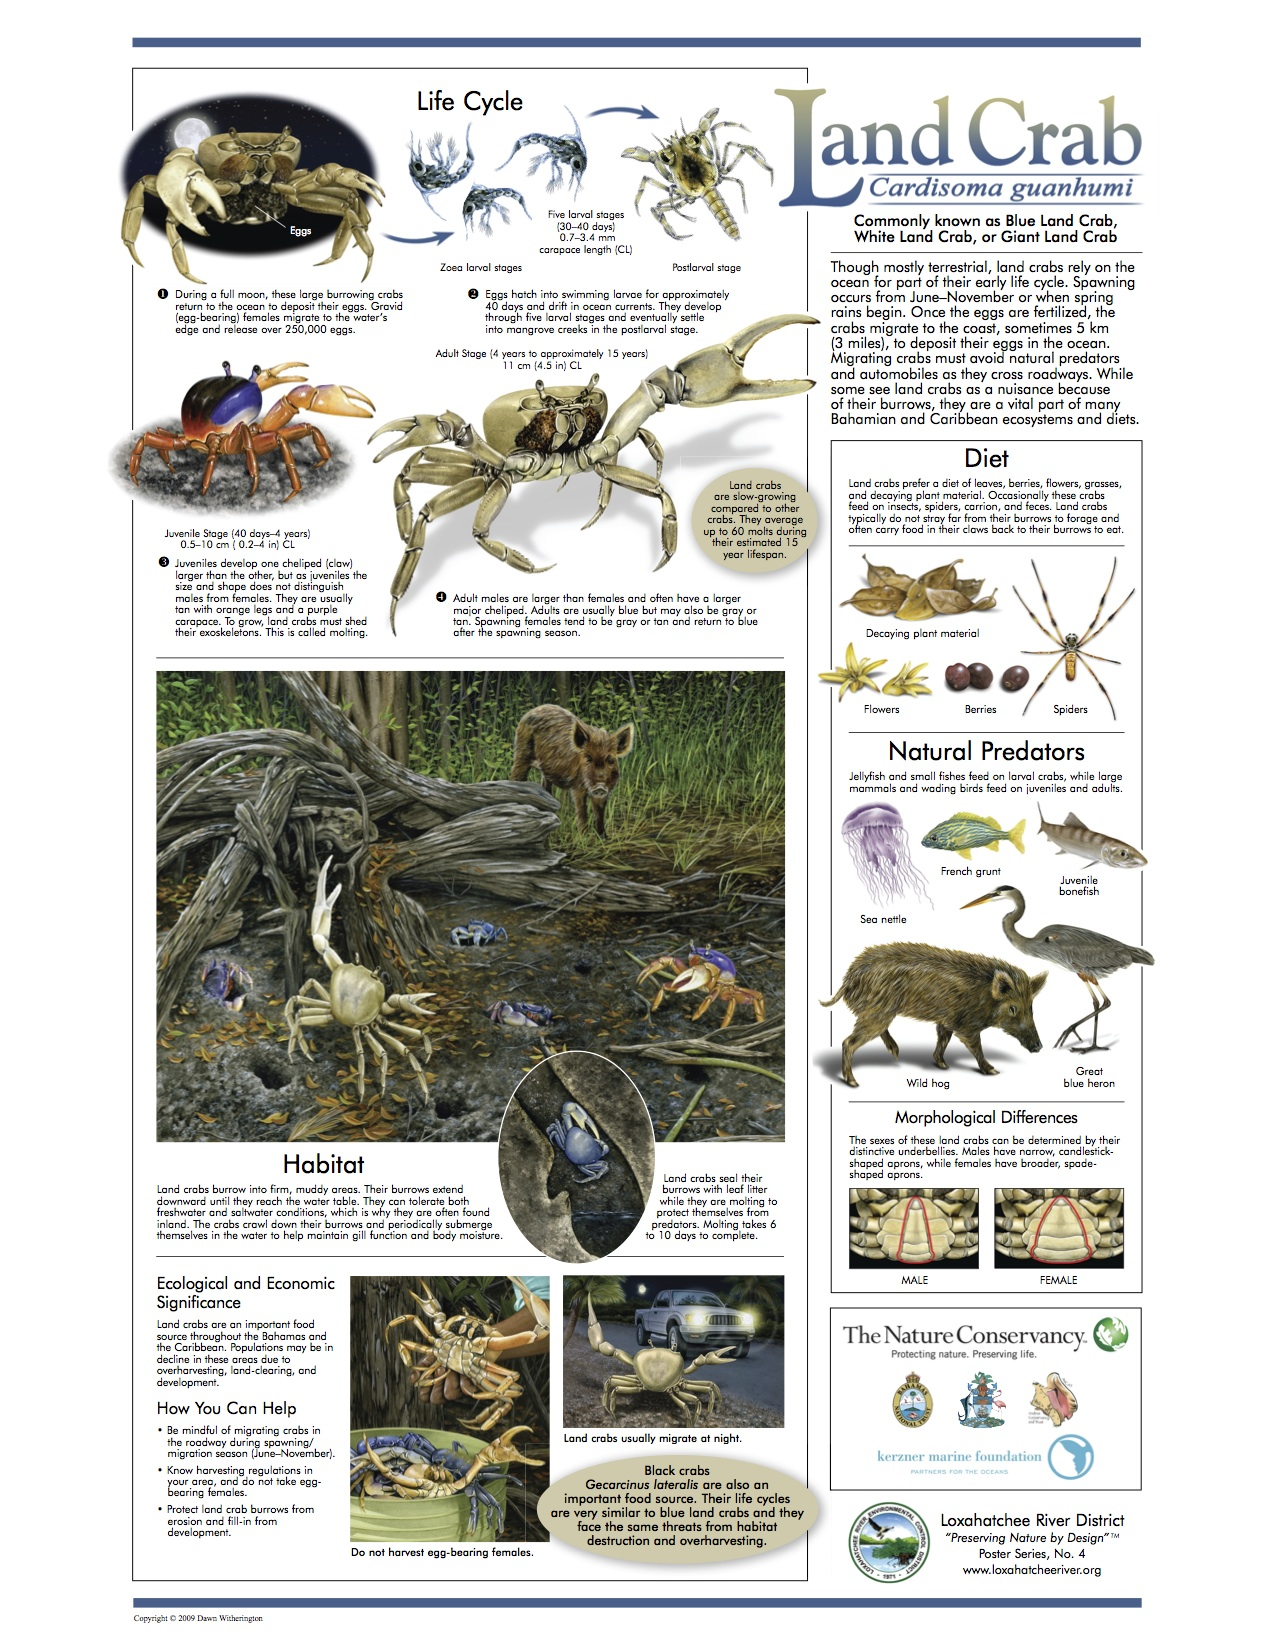 blue-land-crab-loxahatchee-poster-jpg